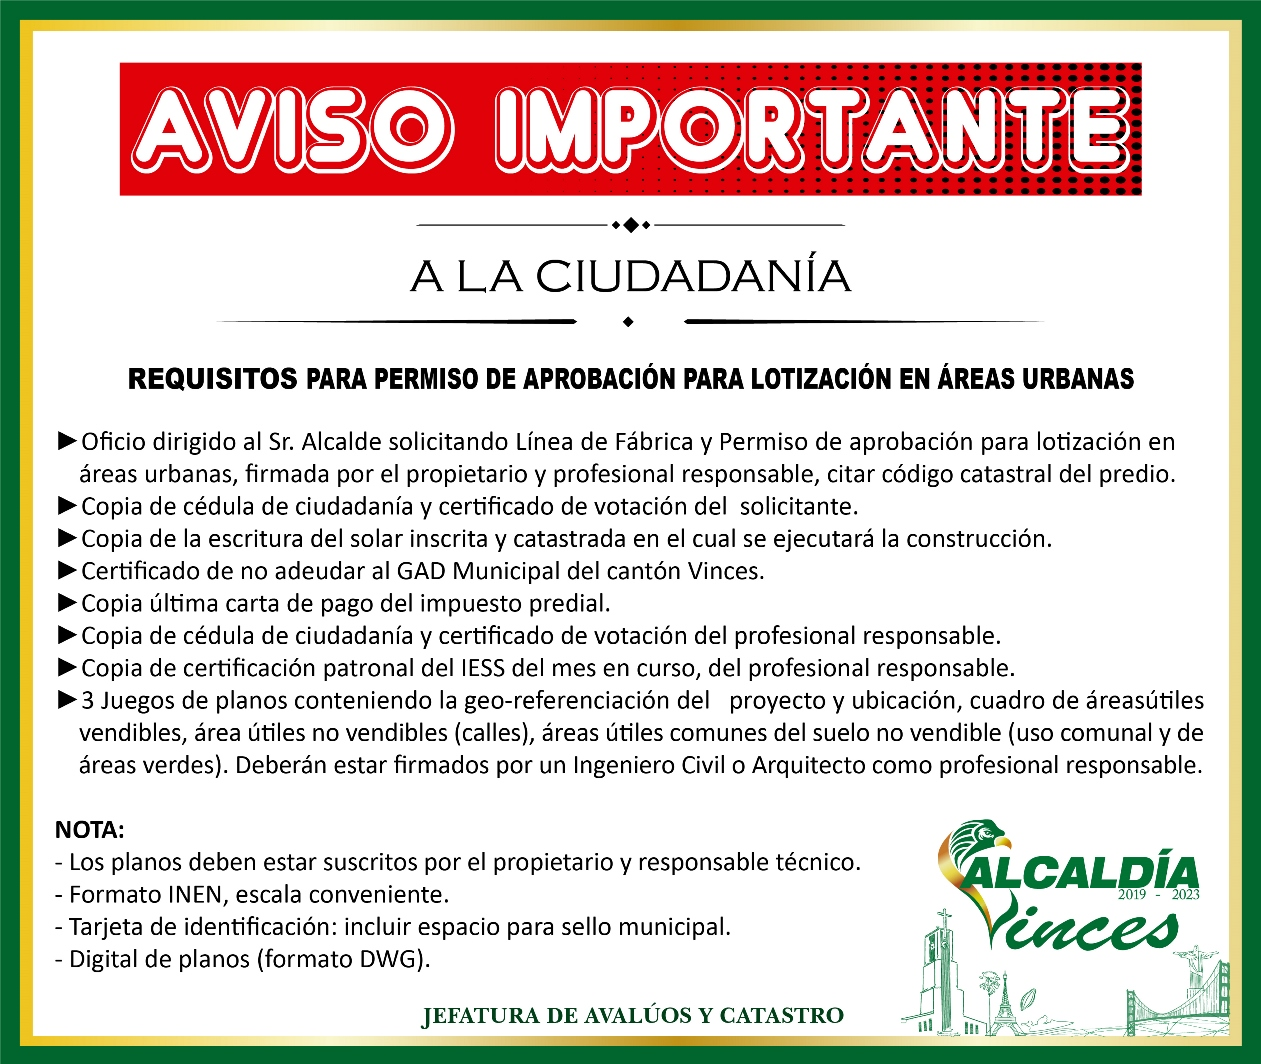 REQUISITOS_PARA_LOTIZACION_EN_AREAS_URBANAS-01.jpg